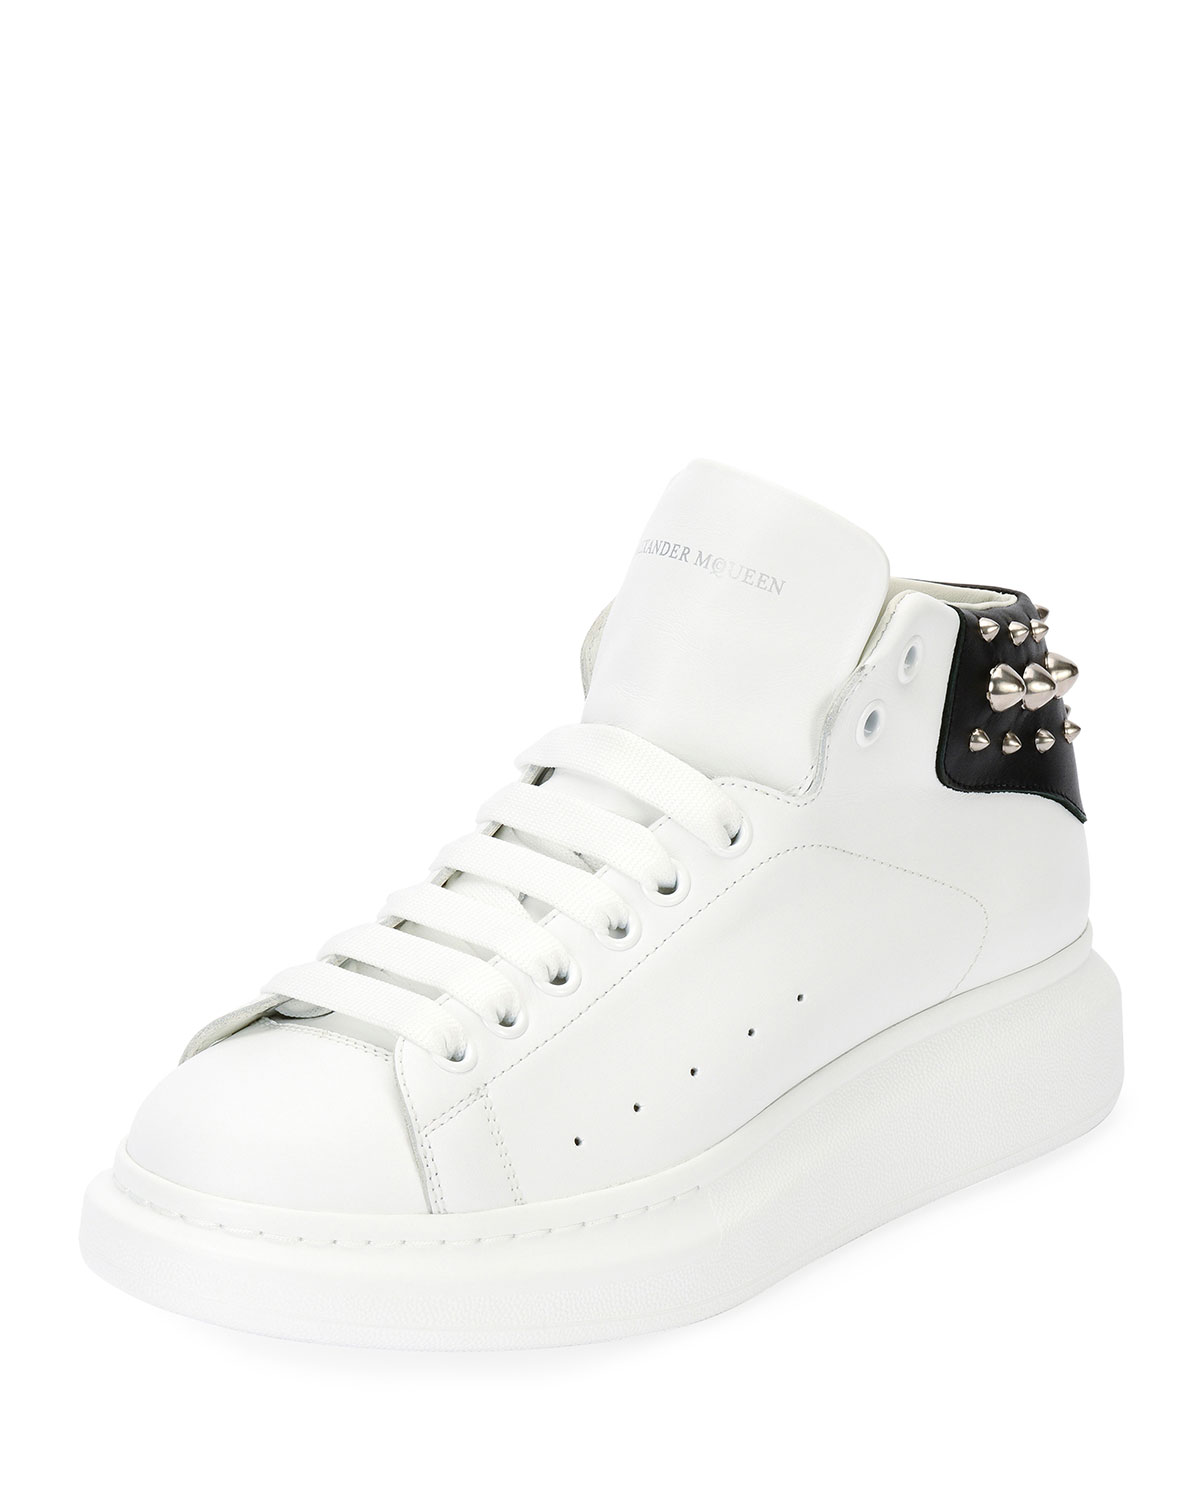 4ec45c5cfcdf2 Alexander McQueen Men s Studded Leather High-Top Sneakers